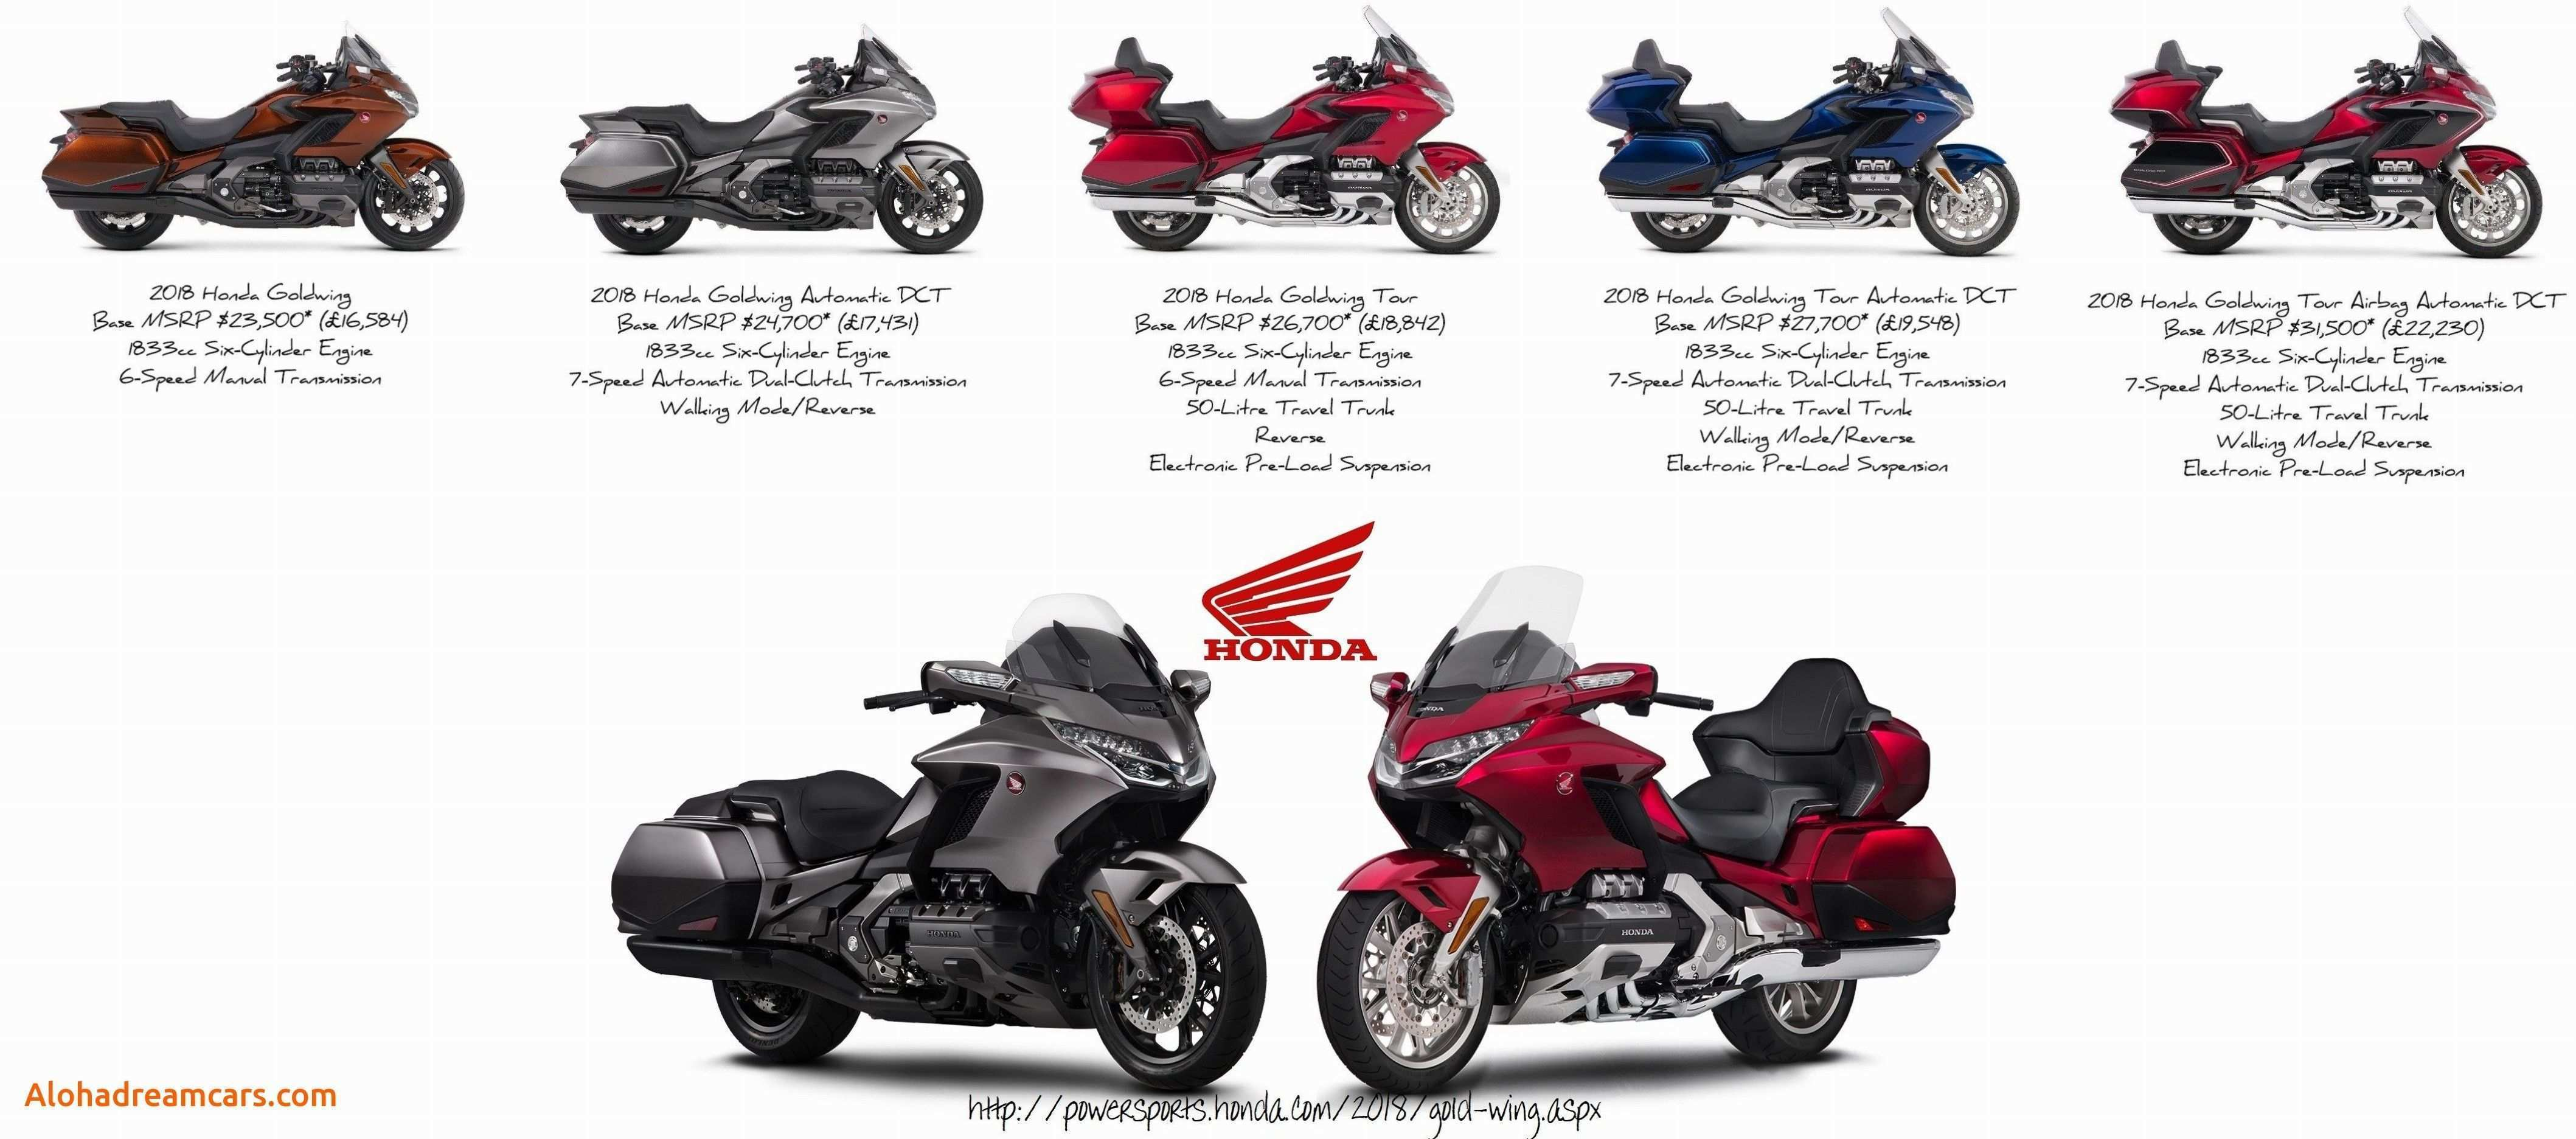 58 The 2020 Honda Gold Wing Overview